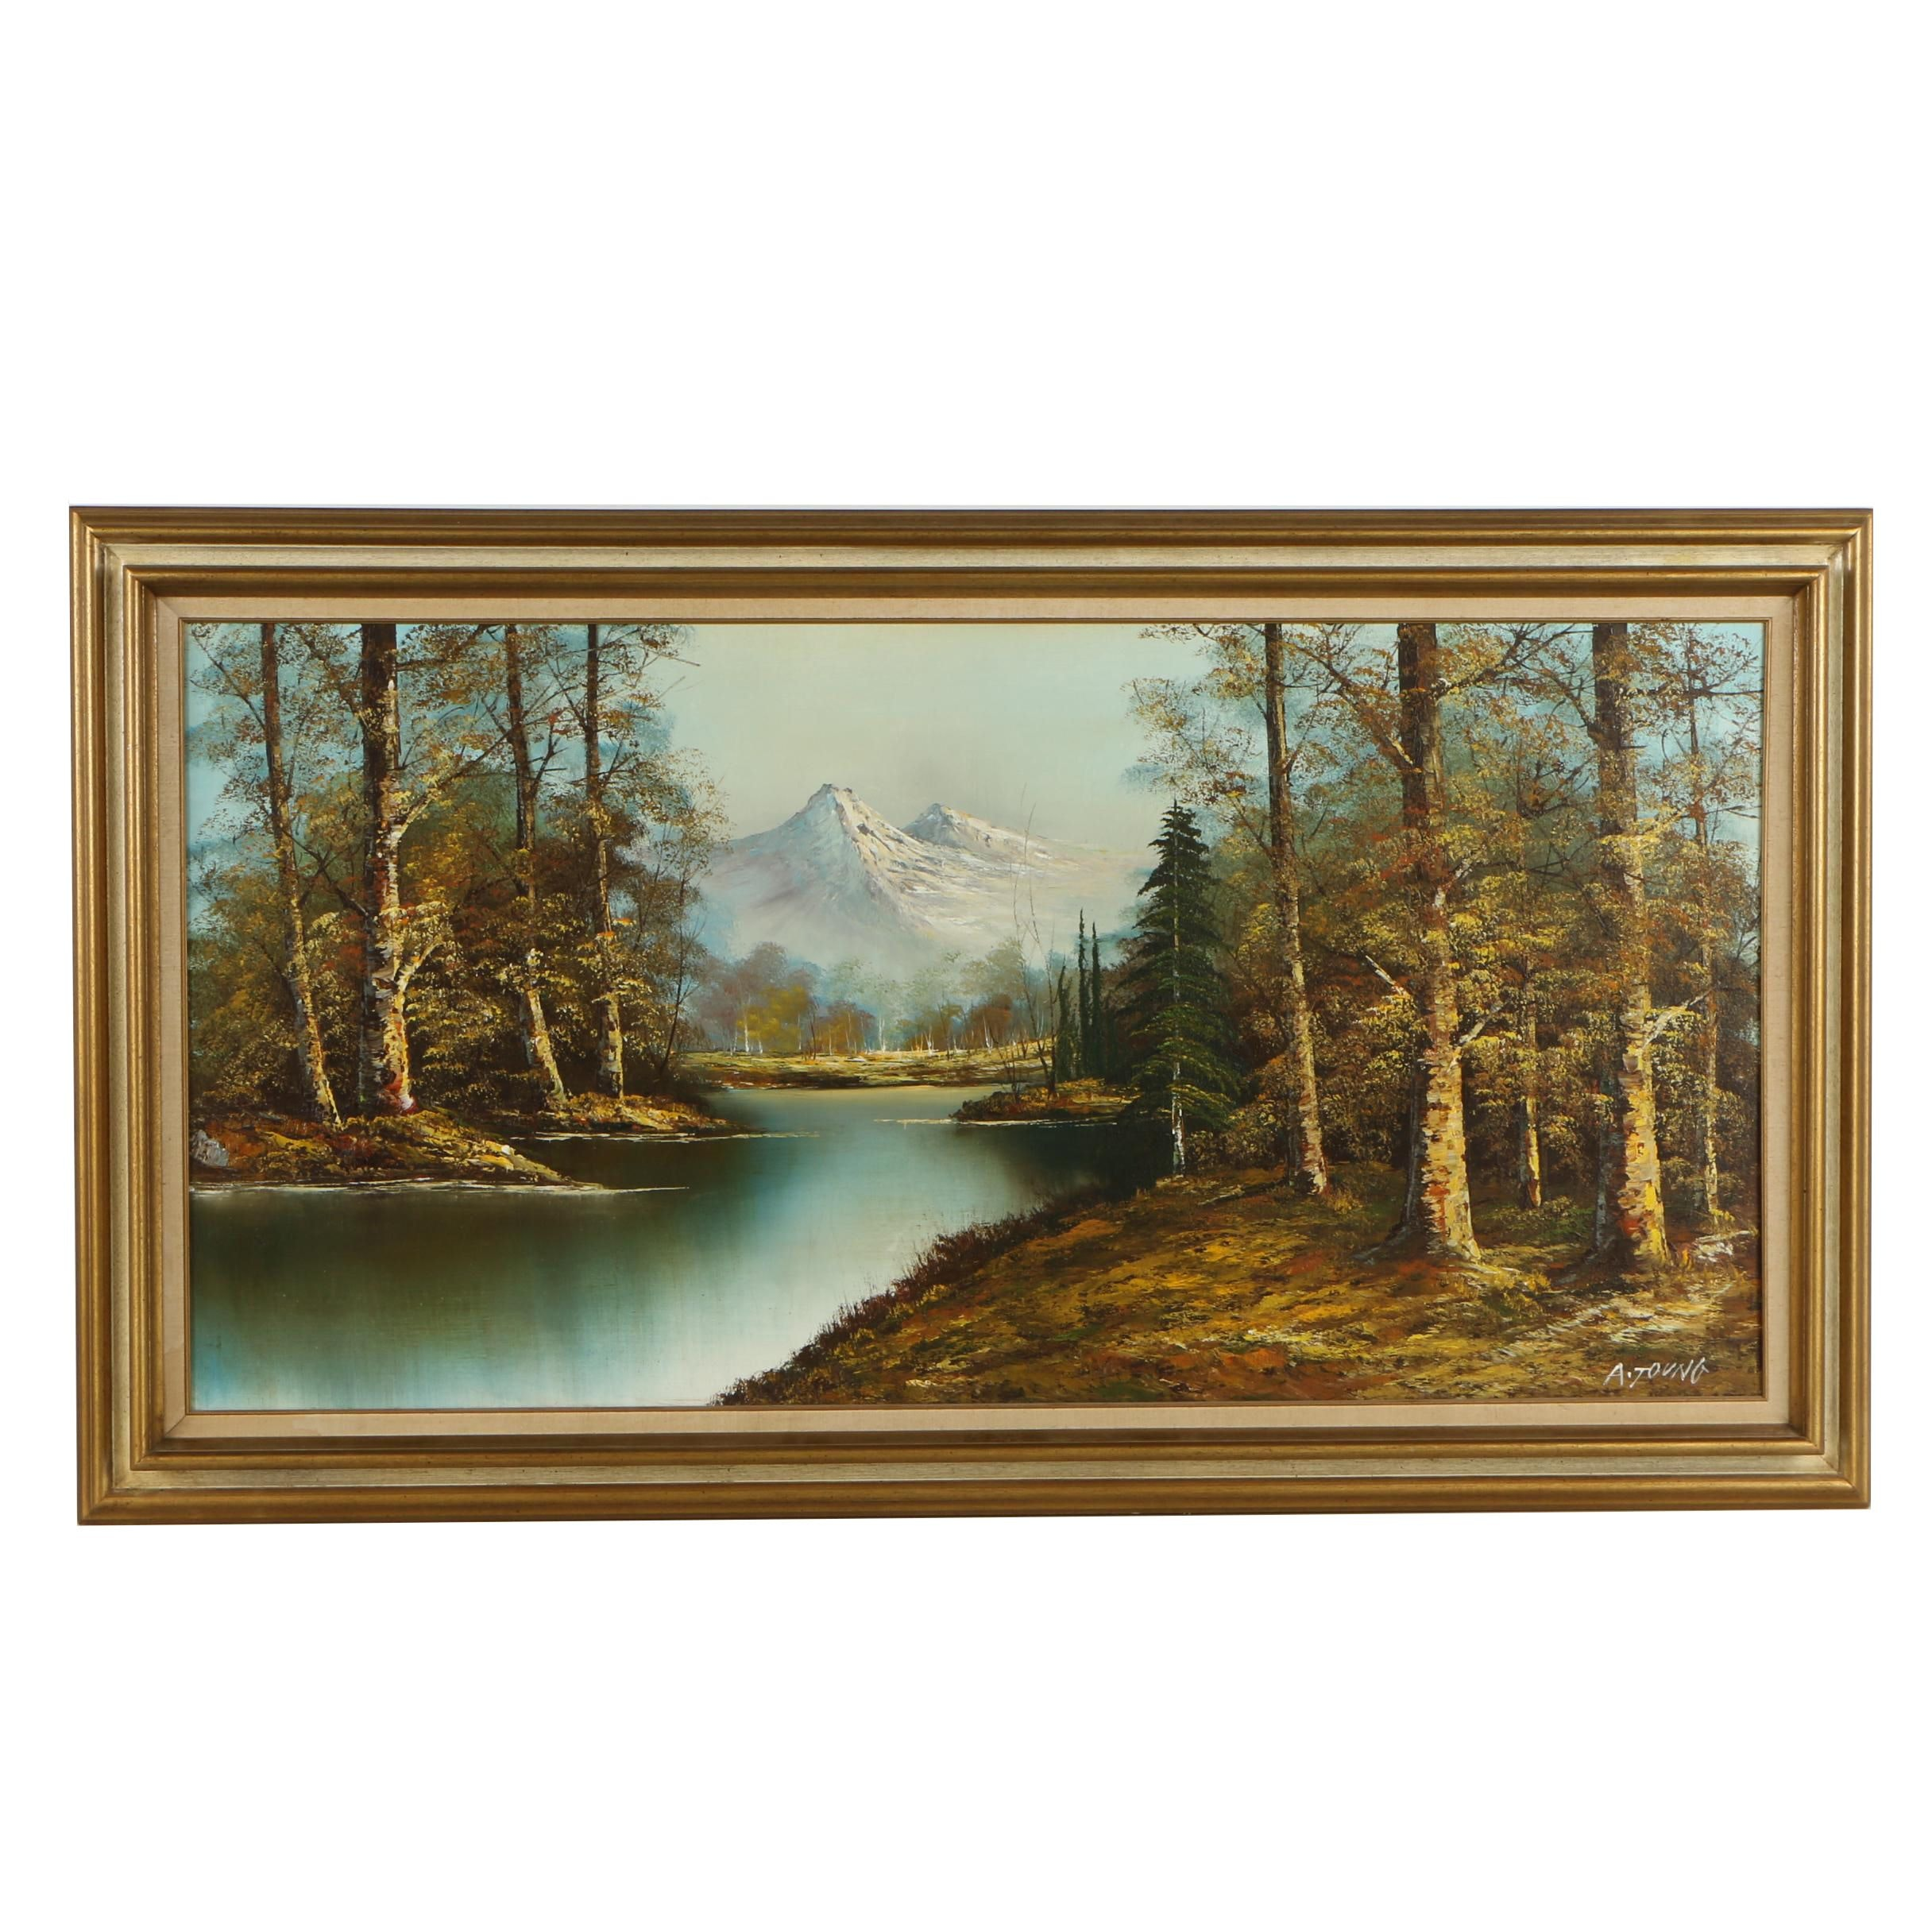 20th Century A. Young Oil Painting of a Landscape